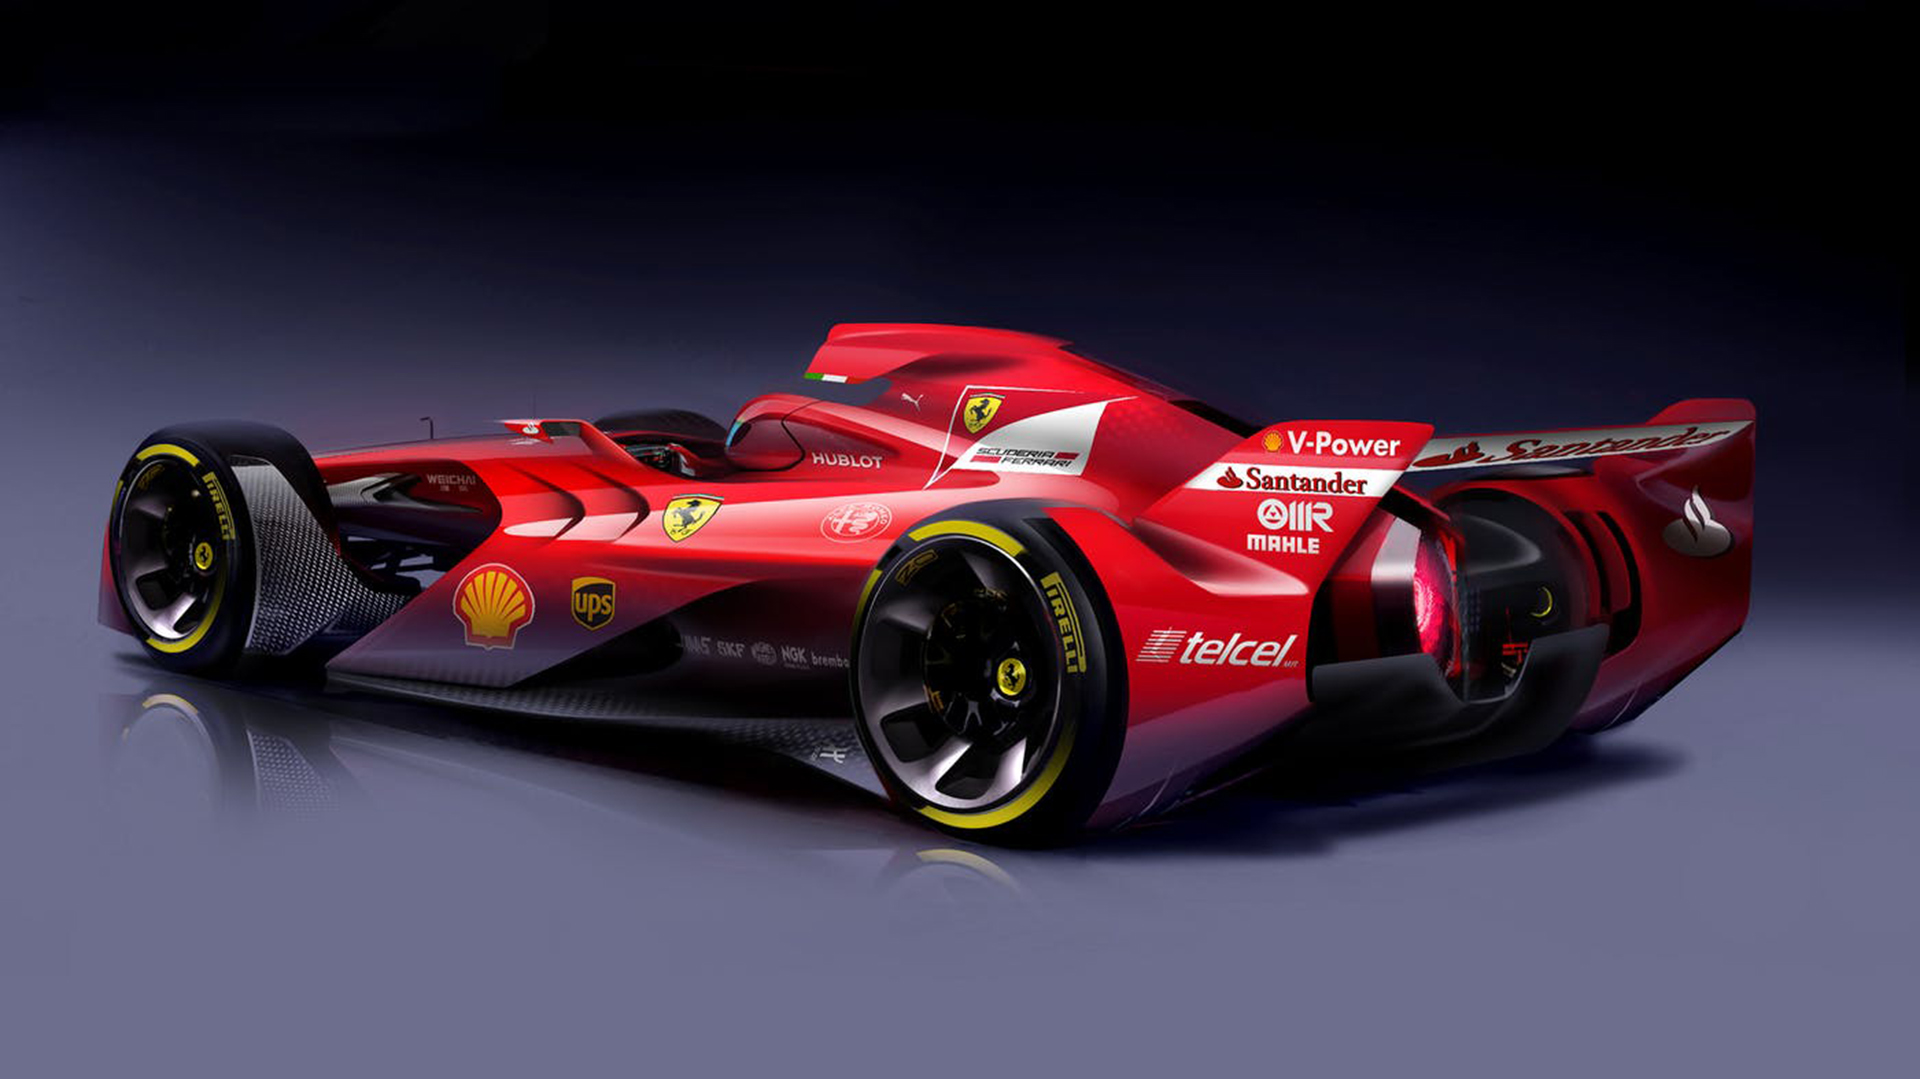 Ferrari's concept looks extreme but the most feasible to achieve out of the four concepts.